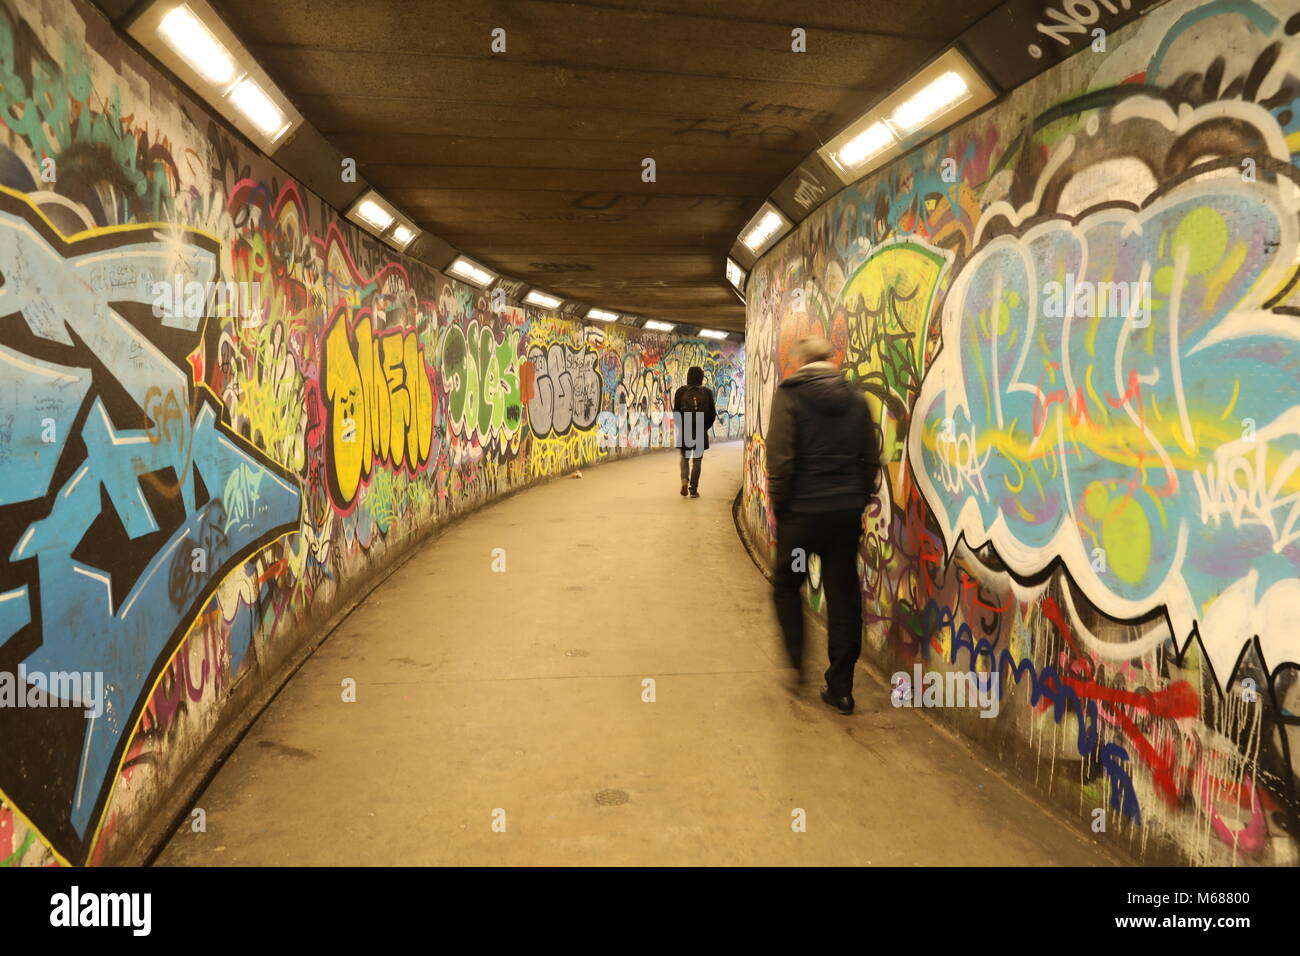 Man walking to the exit of a subway Stock Photo: 175973504 - Alamy